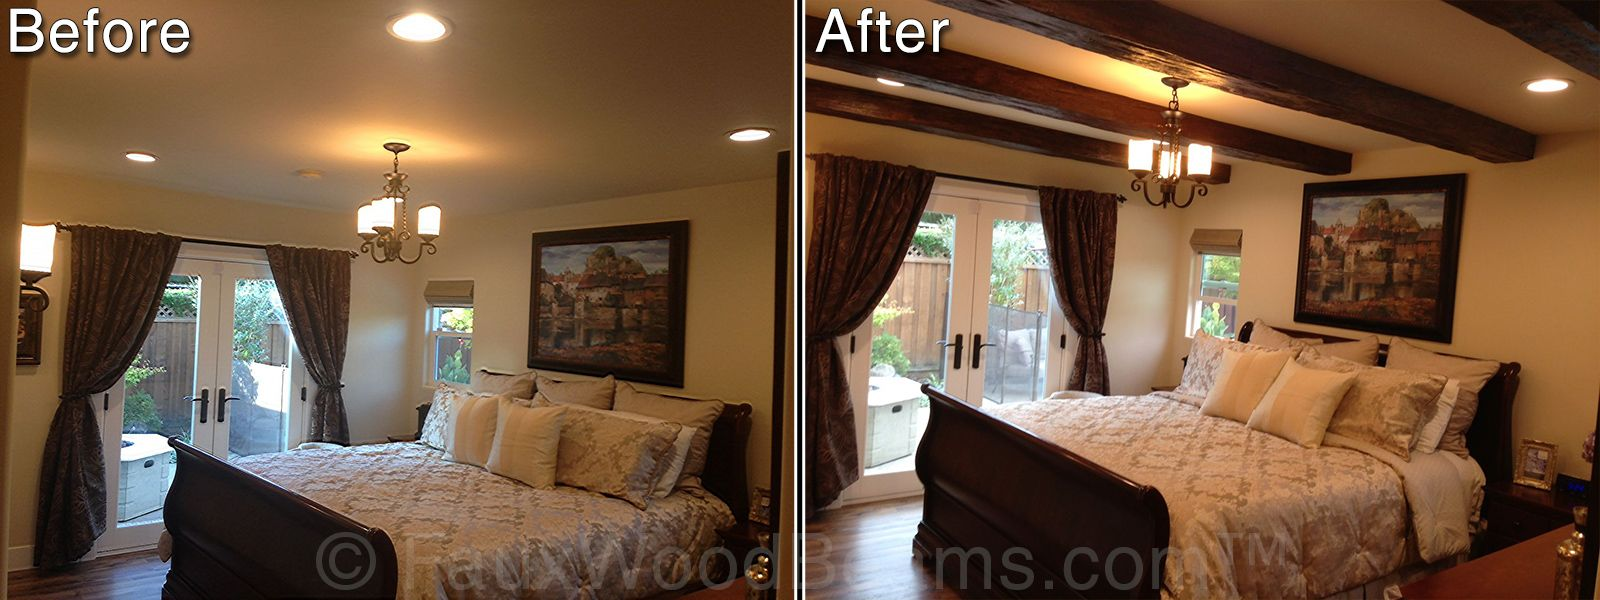 extraordinary design ideas wood ceiling beams. Update bedroom designs with faux wood beams  corbels planks Browse the photo gallery for ideas on adding a new dimension to your ceiling Before and after picture of design imitation